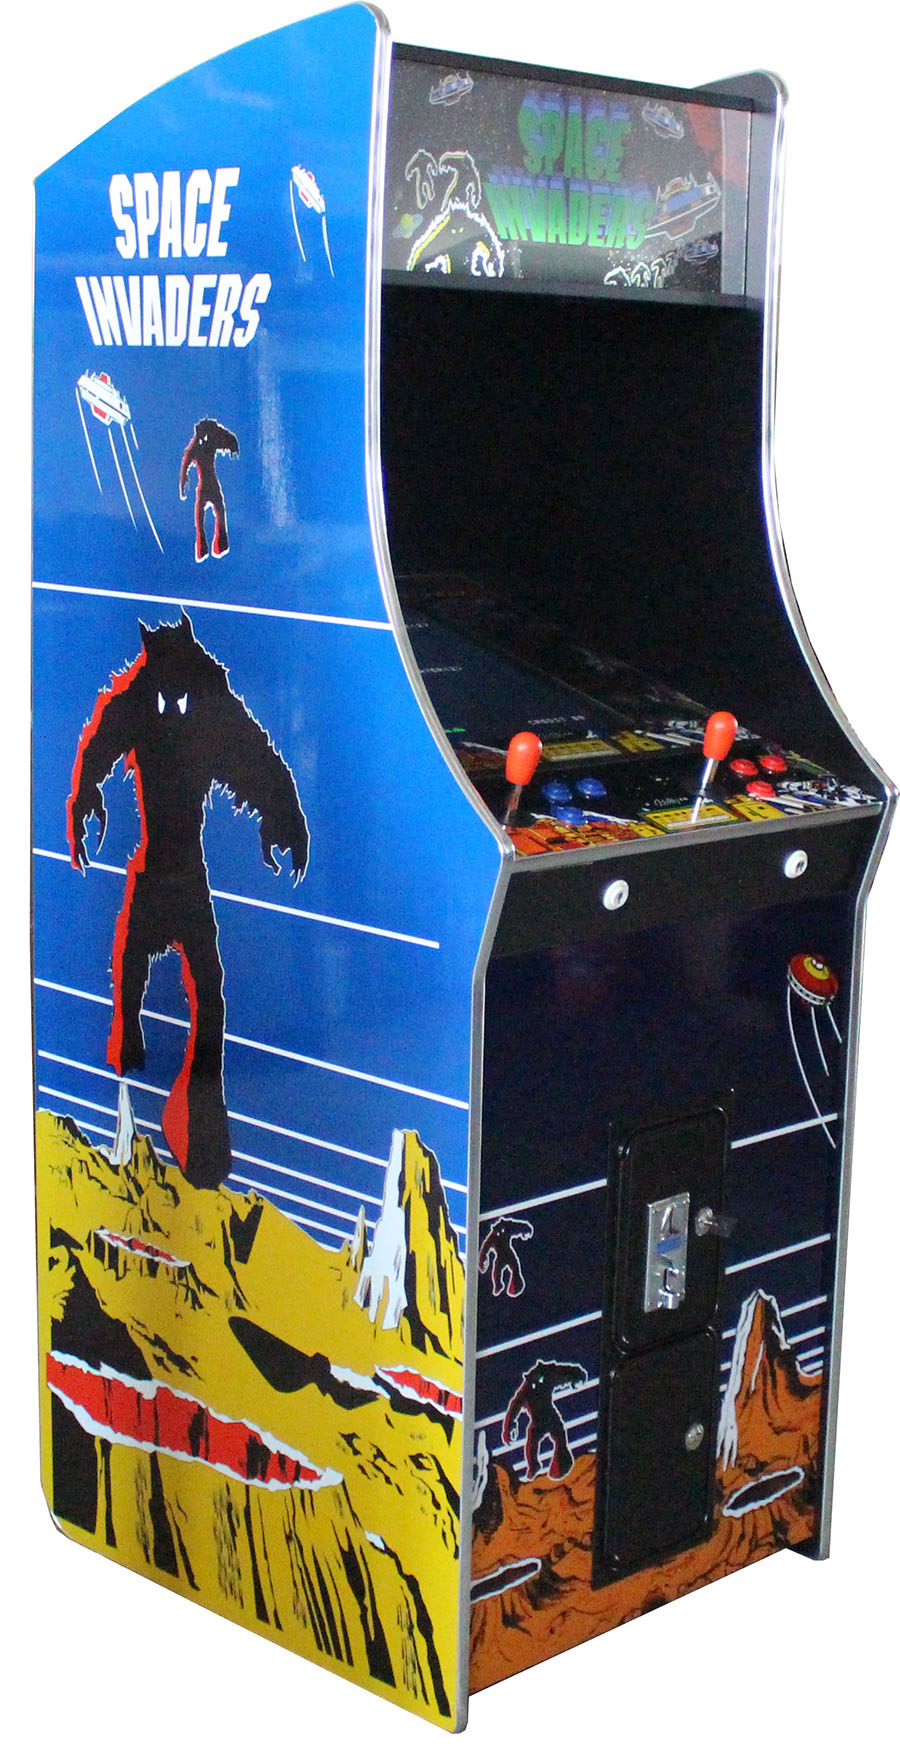 Arcade Rewind 60 Game Upright Arcade Machine Space Invaders for sale